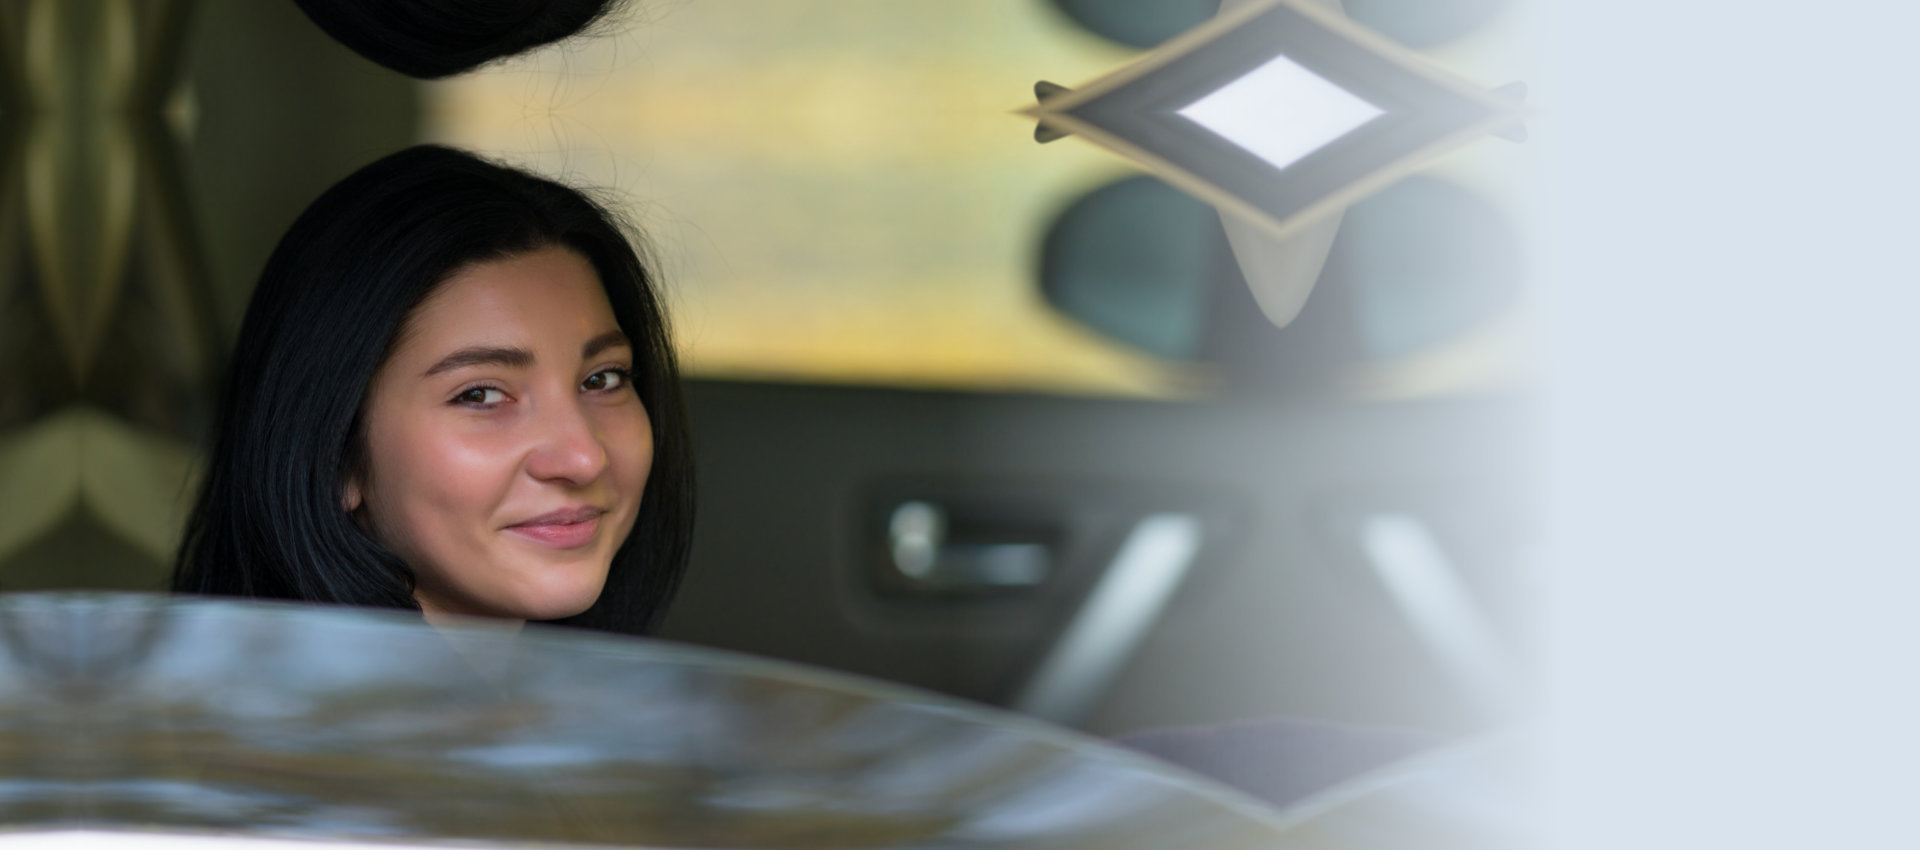 smiling woman inside car